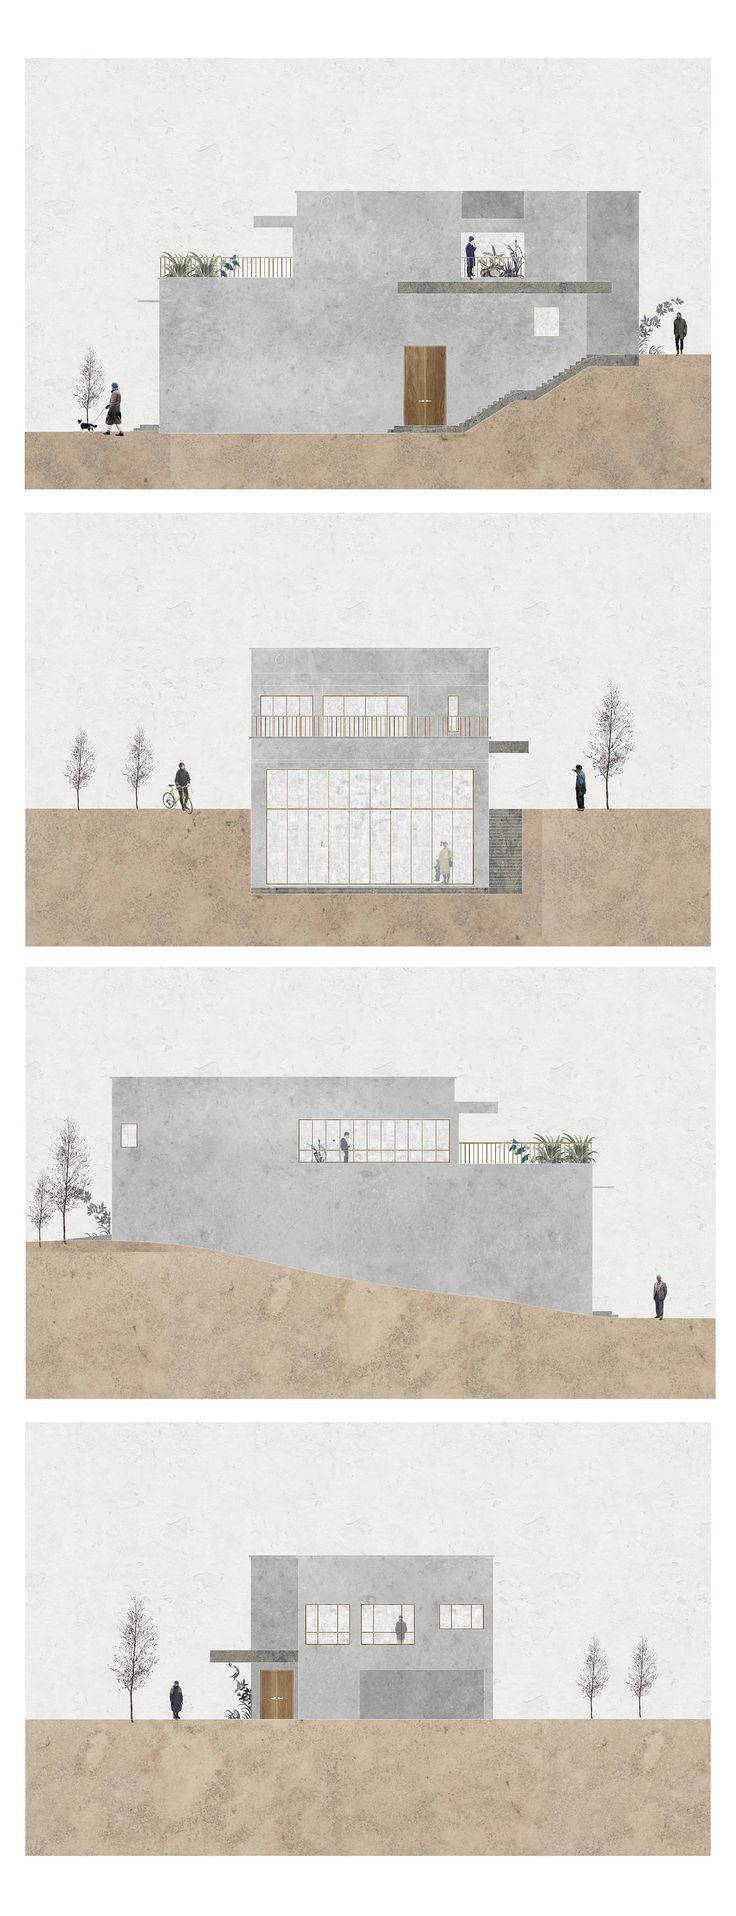 Elevation Plan Presentation : Best images about ideas for architectural